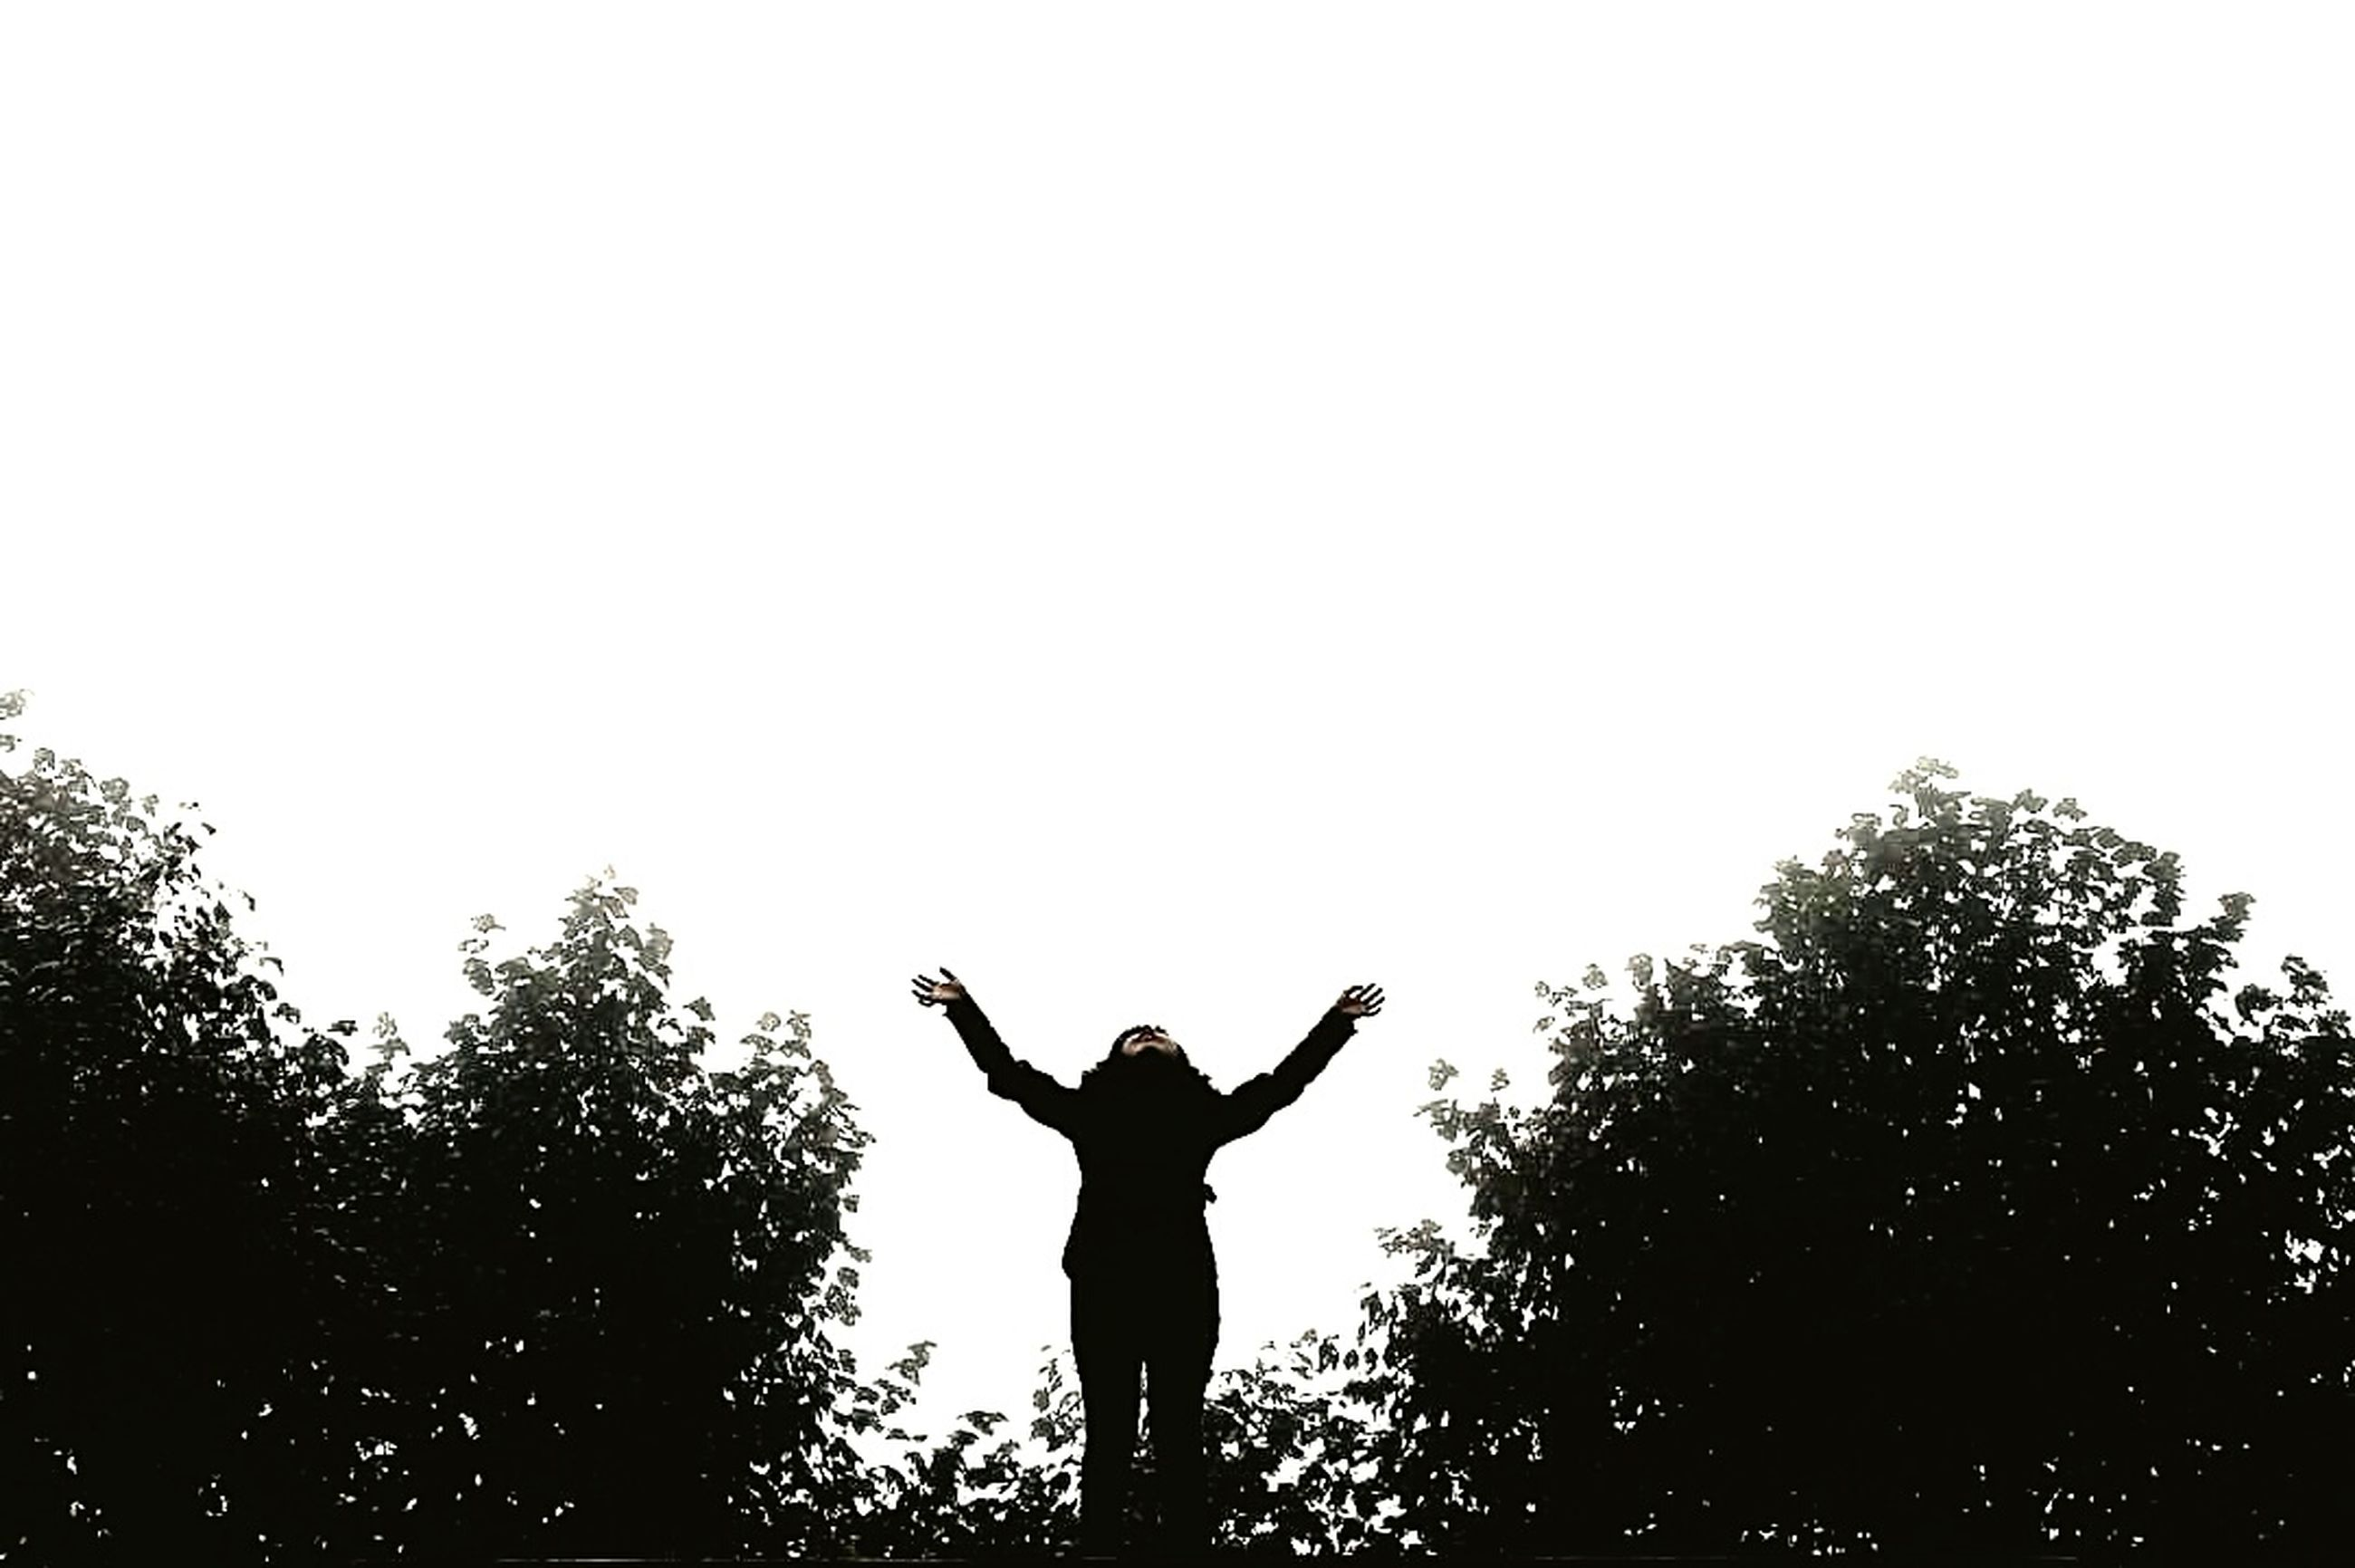 silhouette, men, human body part, human arm, hand raised, one person, lifestyles, arms raised, standing, human hand, excitement, one man only, only men, real people, outdoors, nature, performance, people, adult, adults only, day, golfer